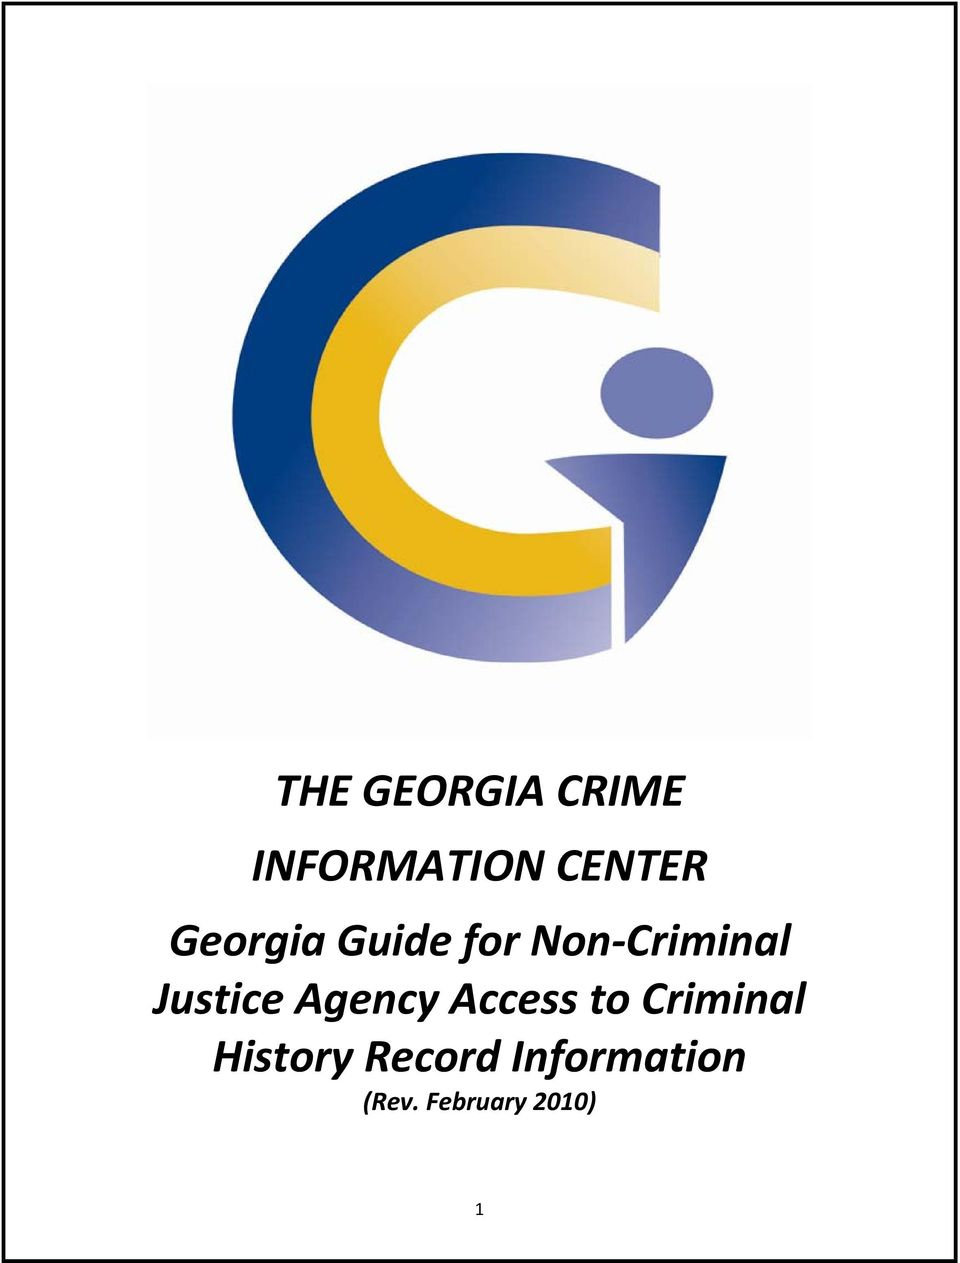 Justice Agency Access to Criminal